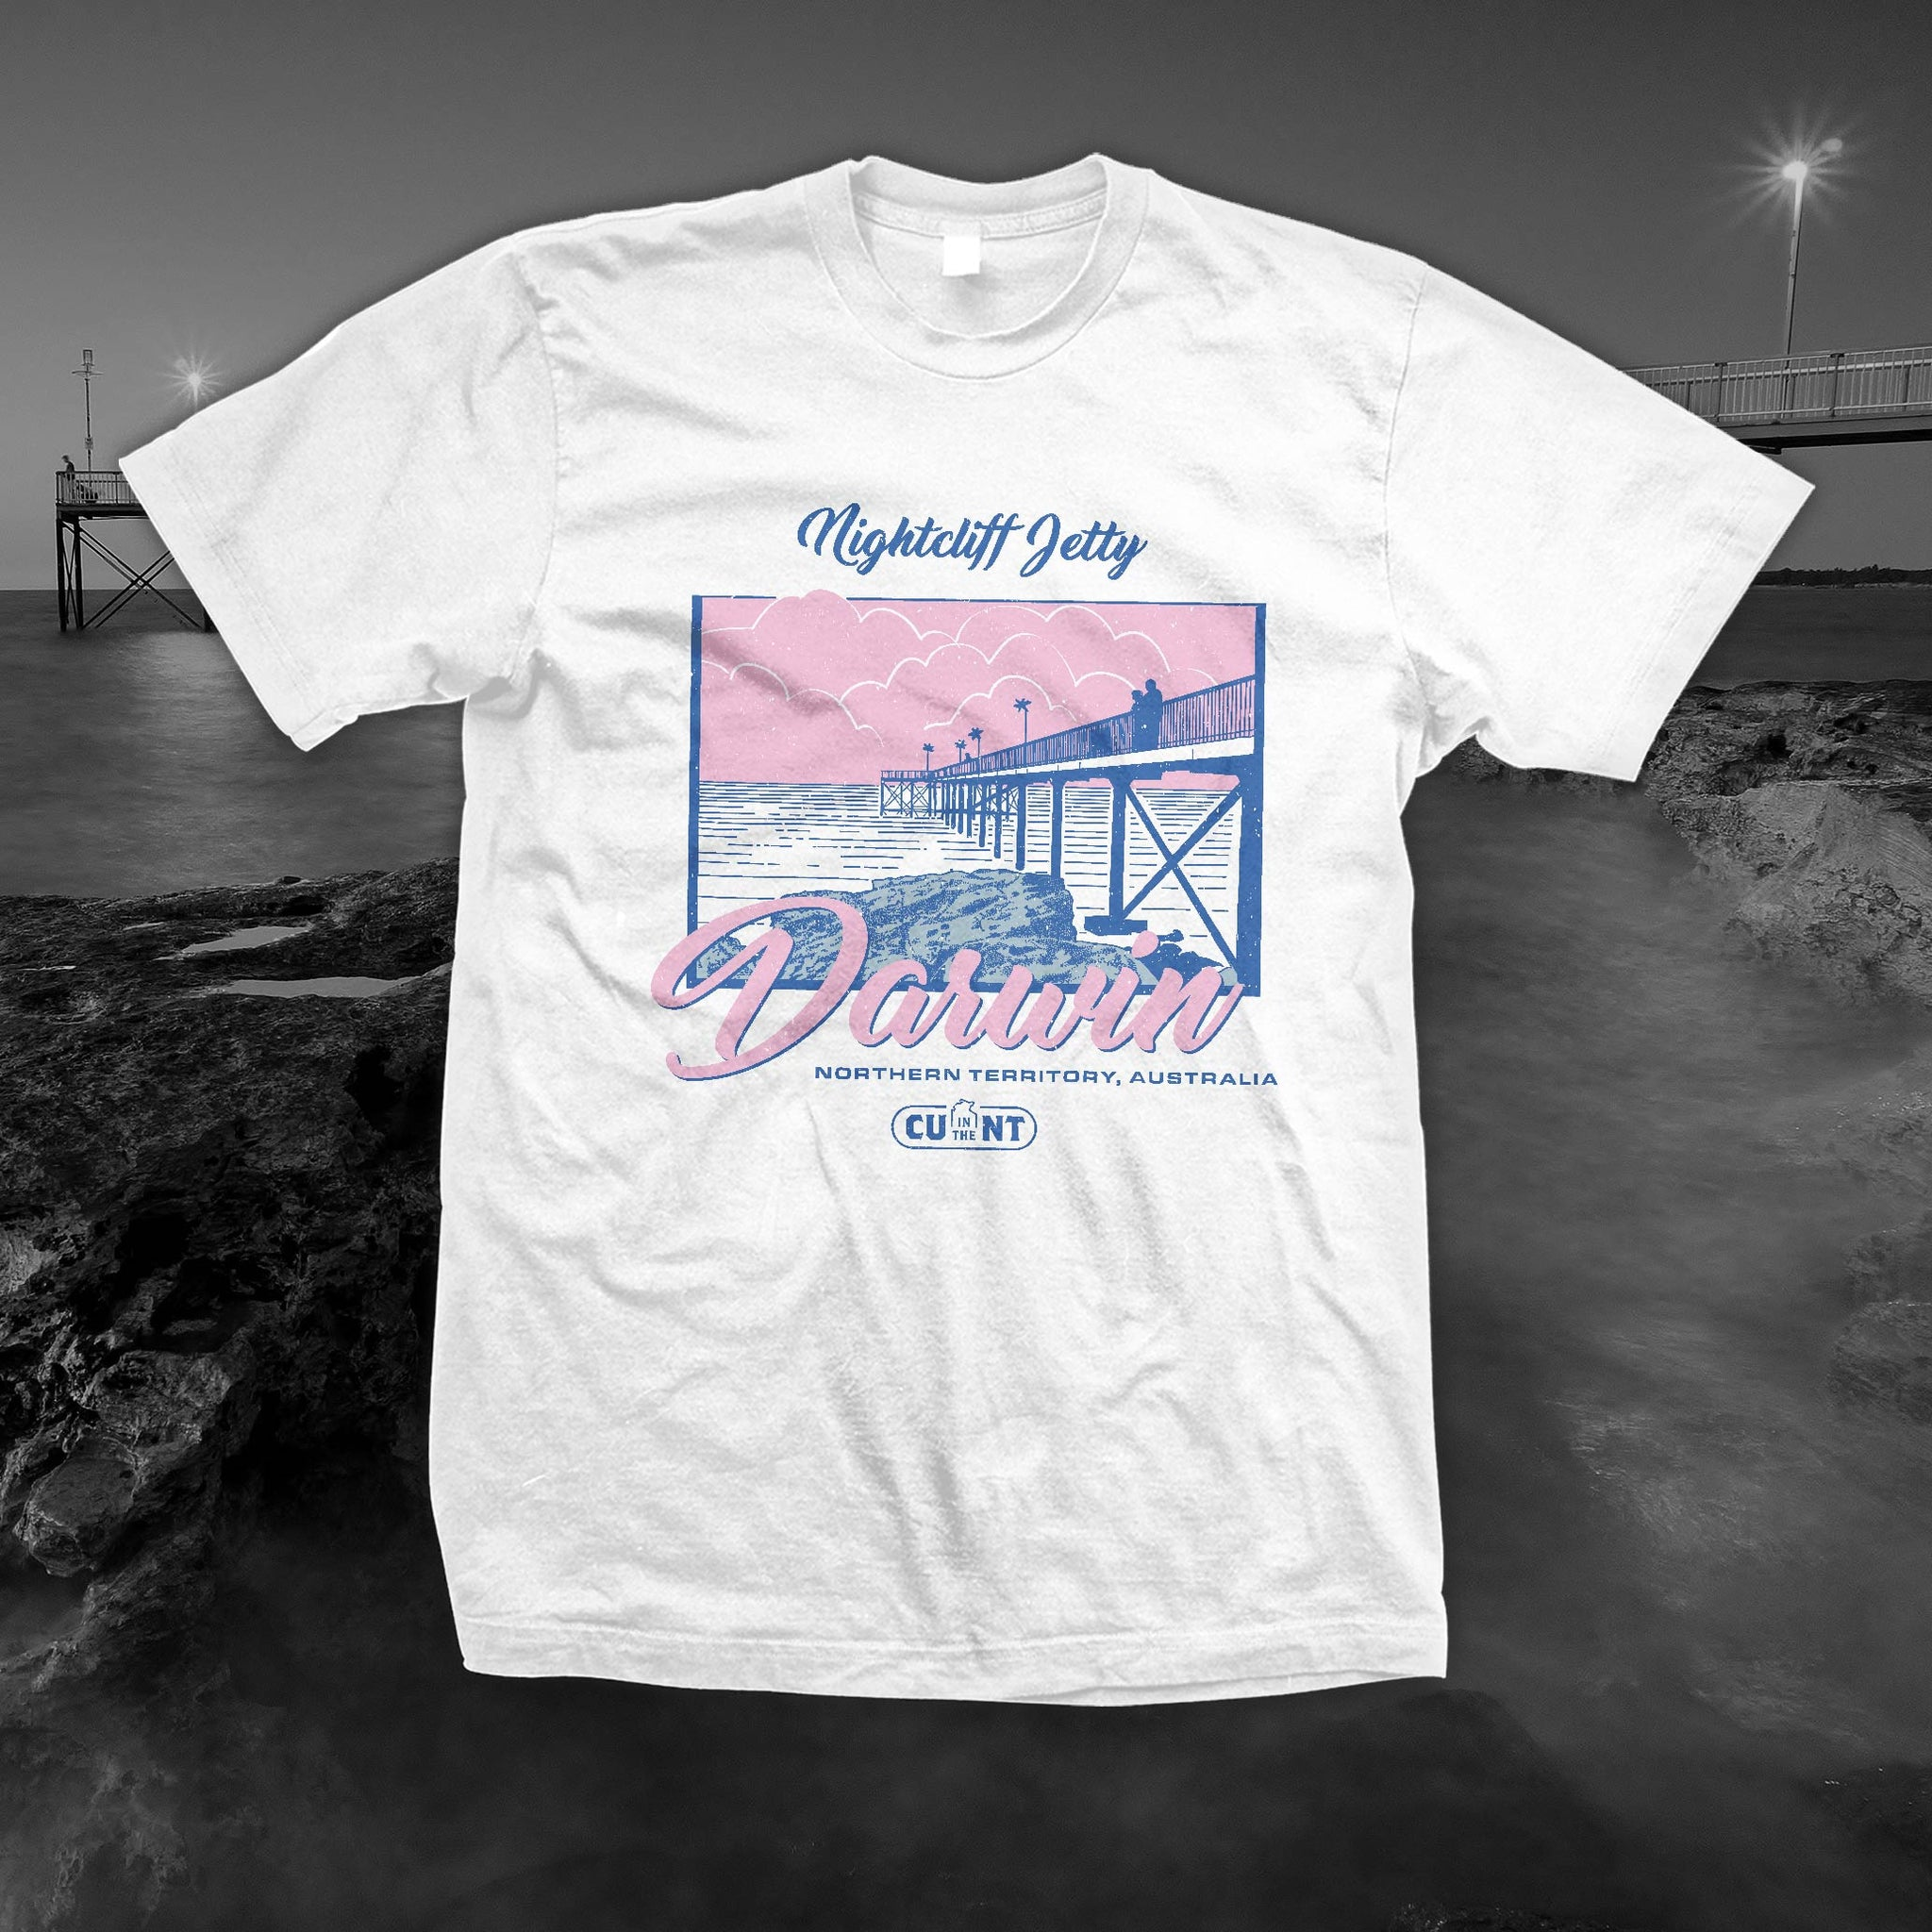 Destination Nightcliff - White Tee